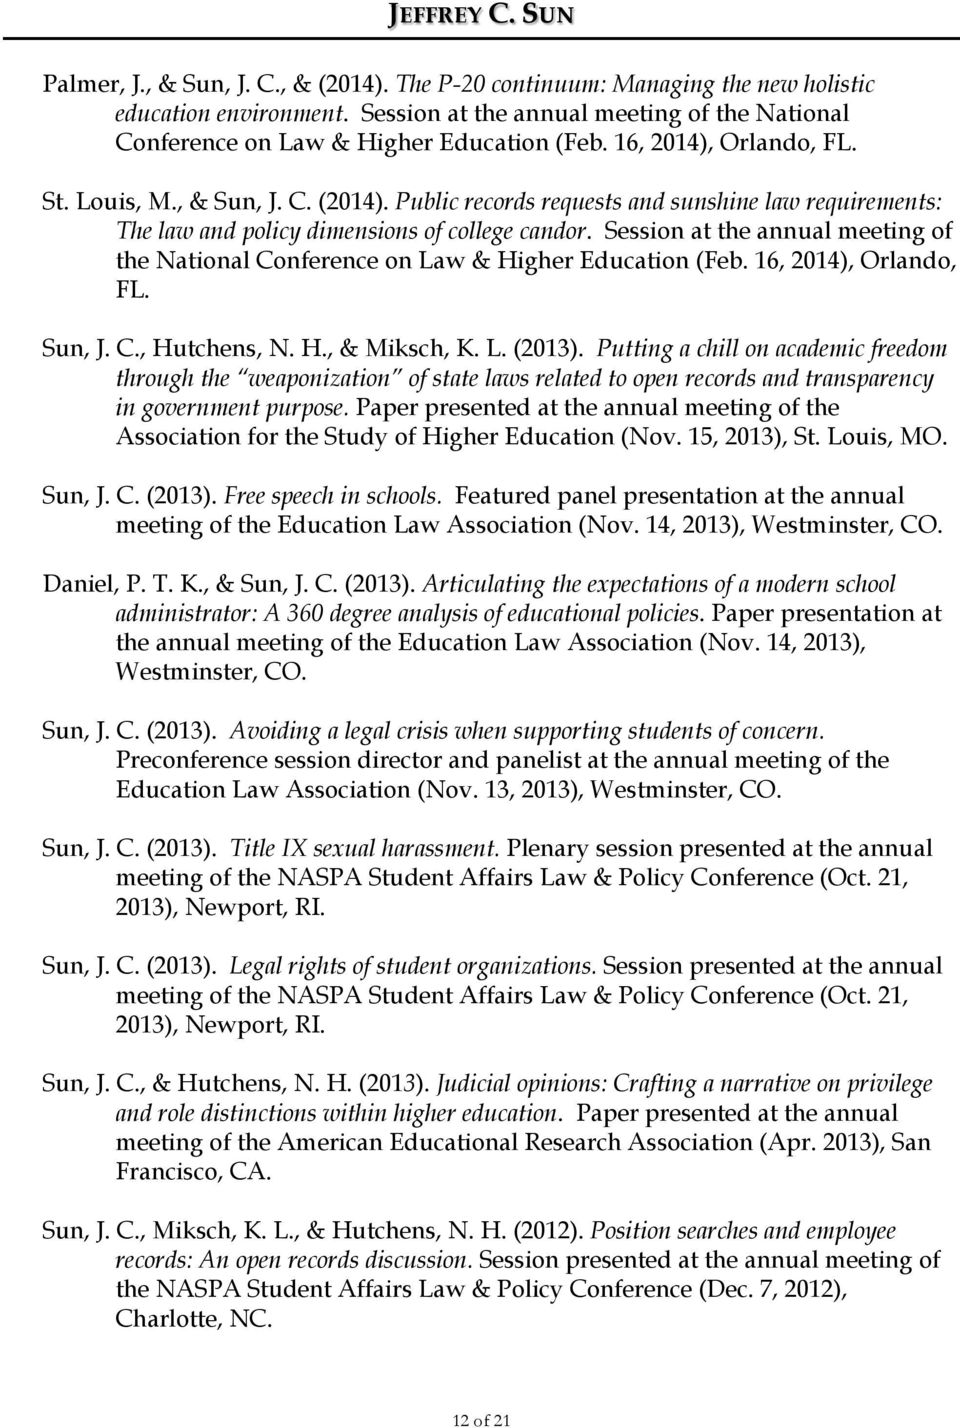 Session at the annual meeting of the National Conference on Law & Higher Education (Feb. 16, 2014), Orlando, FL. Sun, J. C., Hutchens, N. H., & Miksch, K. L. (2013).